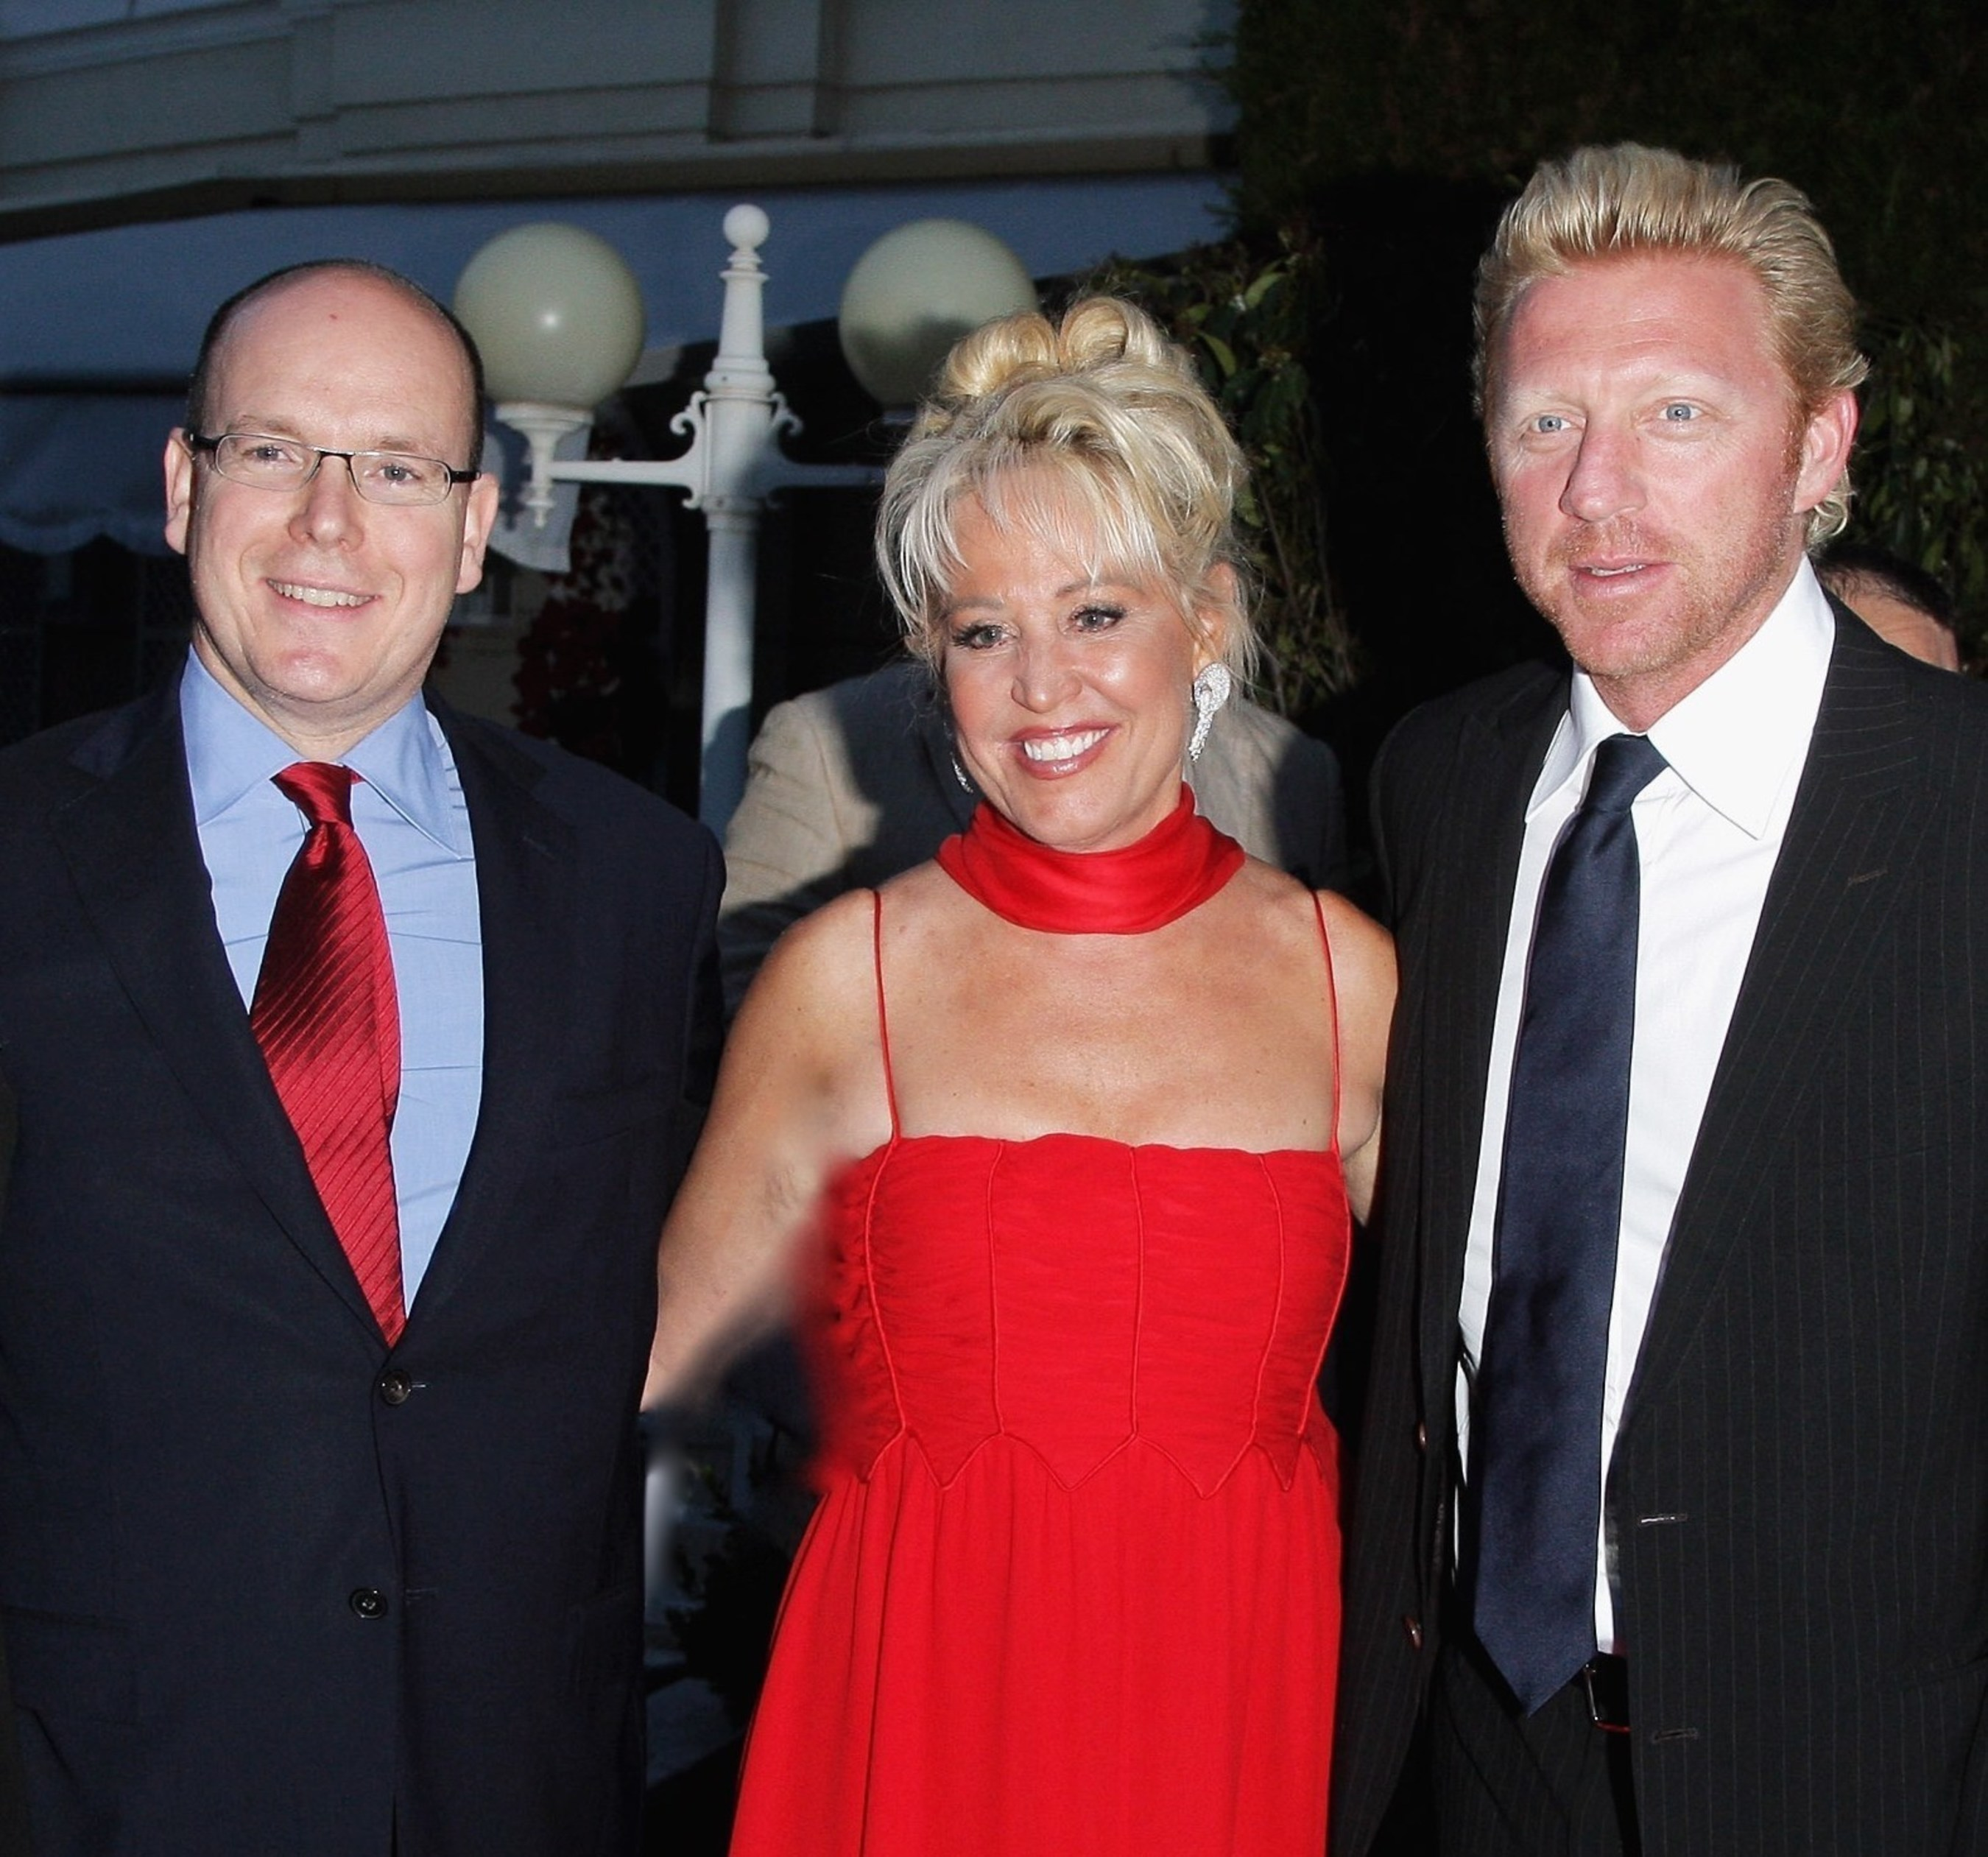 HSH Prince Albert II of Monaco with executive producer of the Better World Awards, Gina deFranco and Boris Becker attending the Better World Awards, Monte-Carlo at the Hotel de Paris.